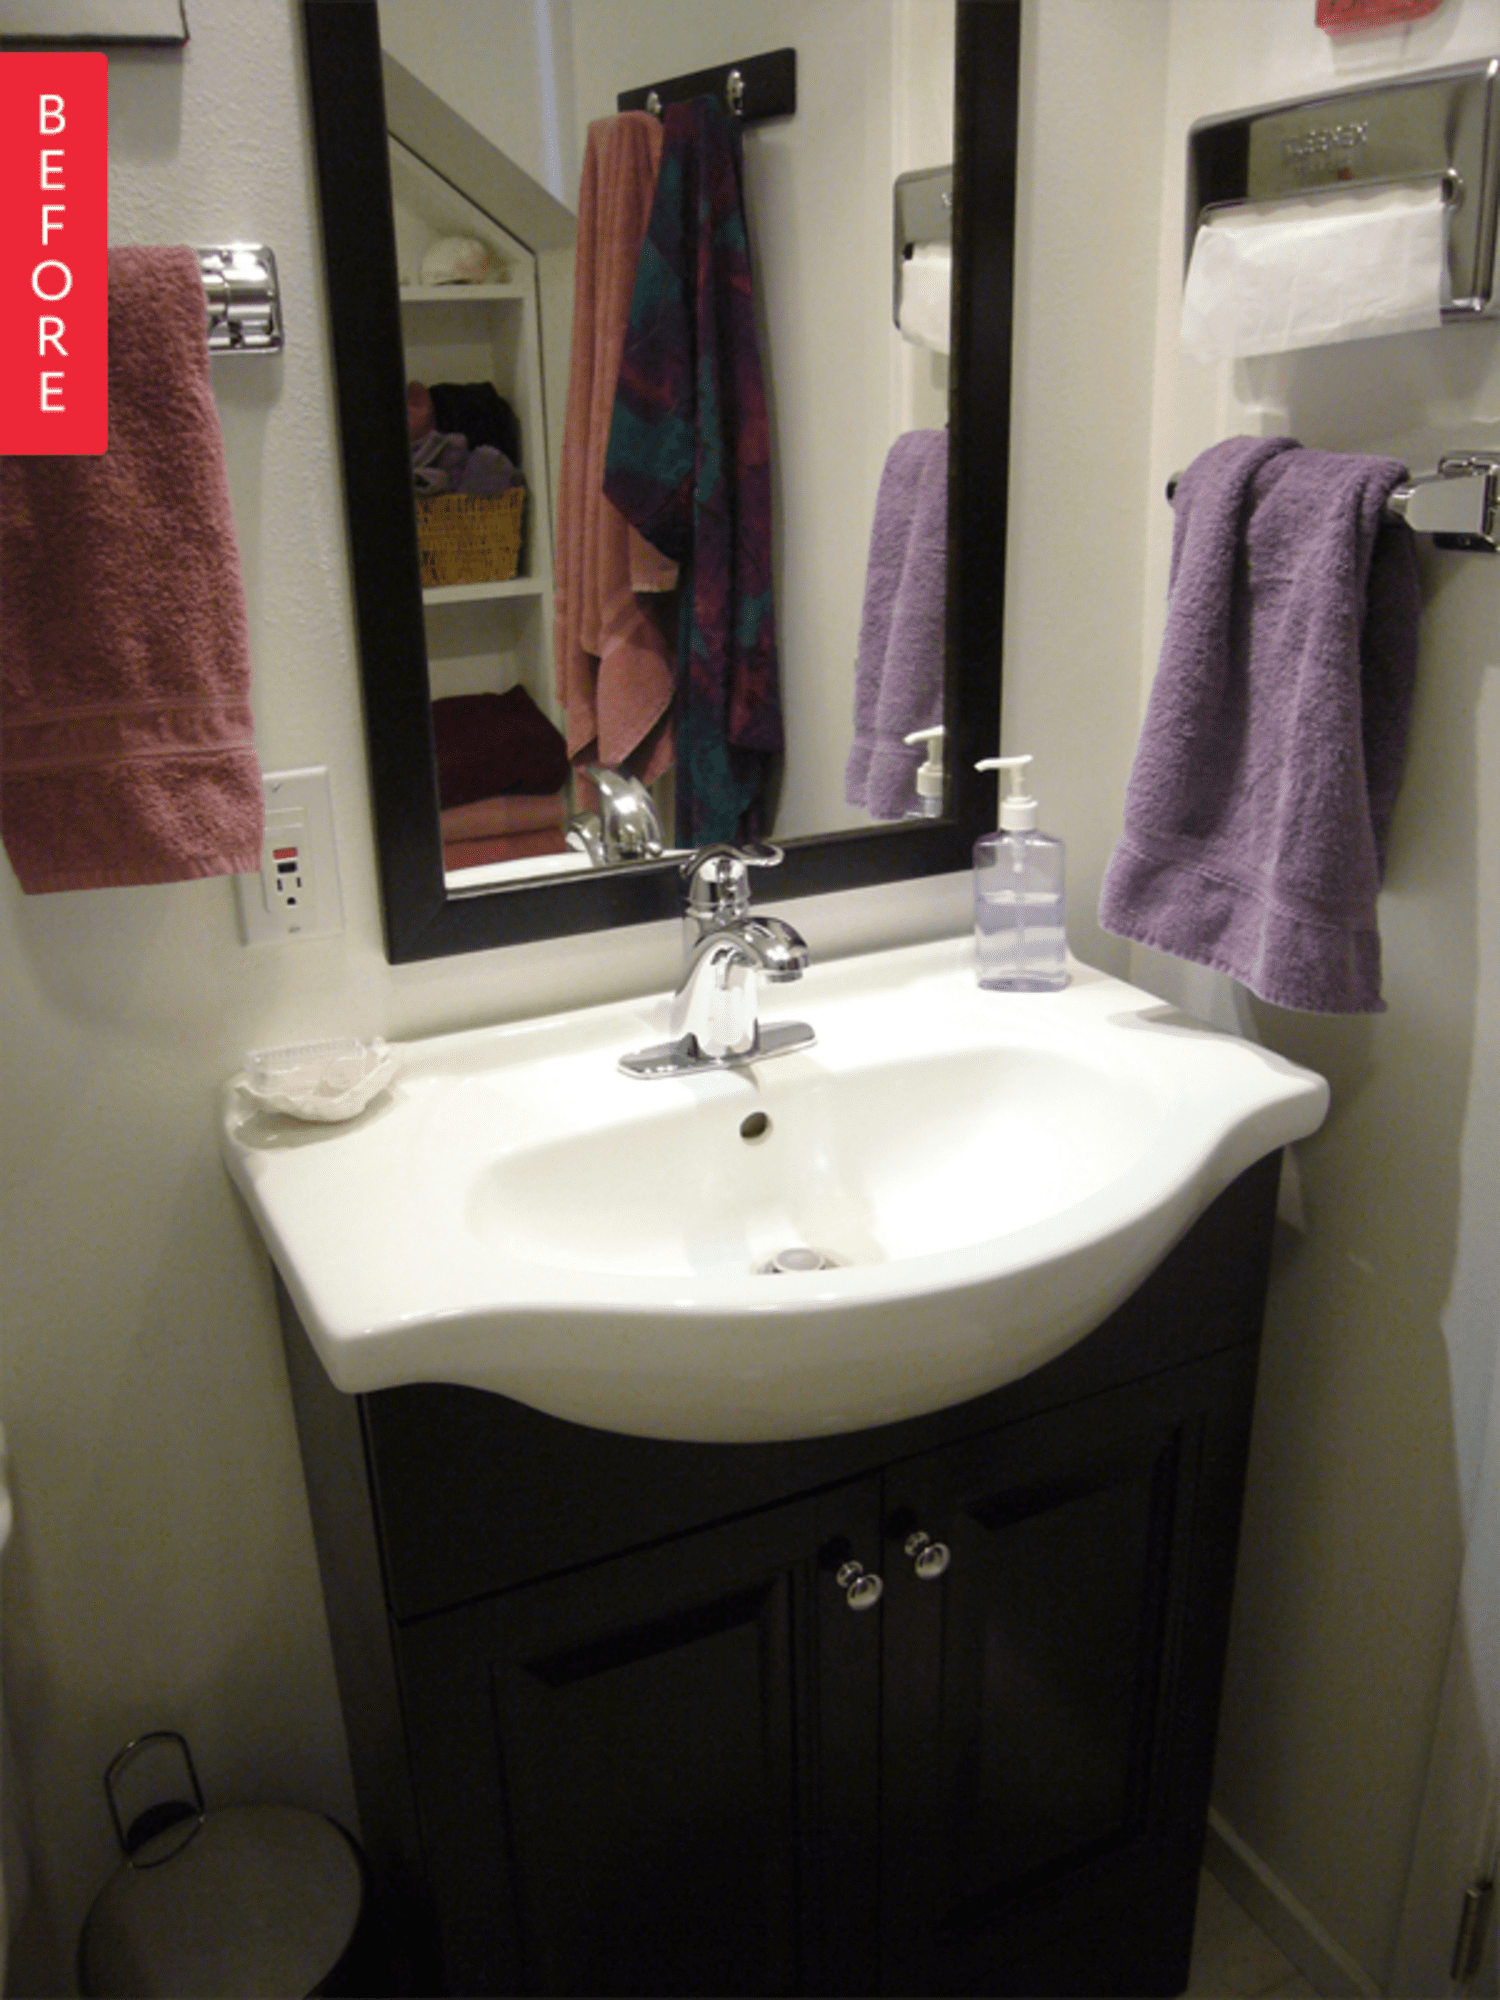 5 Fresh Clean And Spring Worthy Bathroom Colors: Before & After: A Tiny Powder Room Gets Patterned